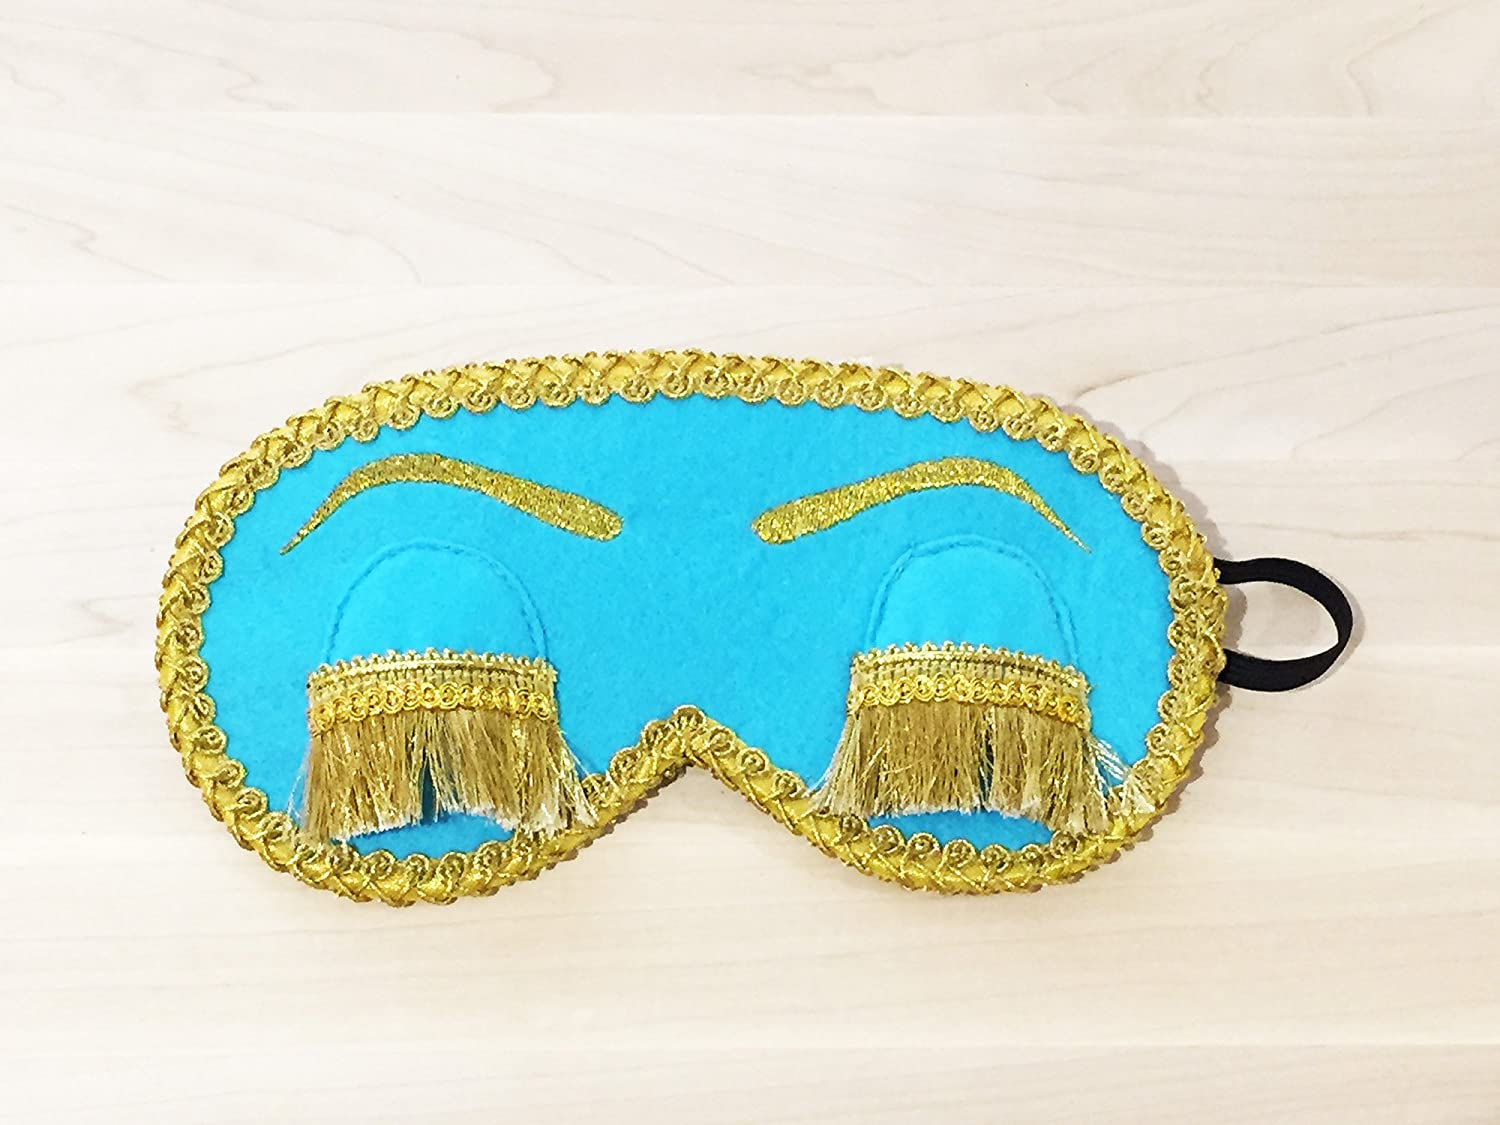 Amazon.com: Audrey Hepburn Sleep Mask with Embroidery Eyelashes Holly Golightly Sleep Masks Breakfast at Tiffanys Eye Mask Sleeping Eye Masks Bridal Shower ...